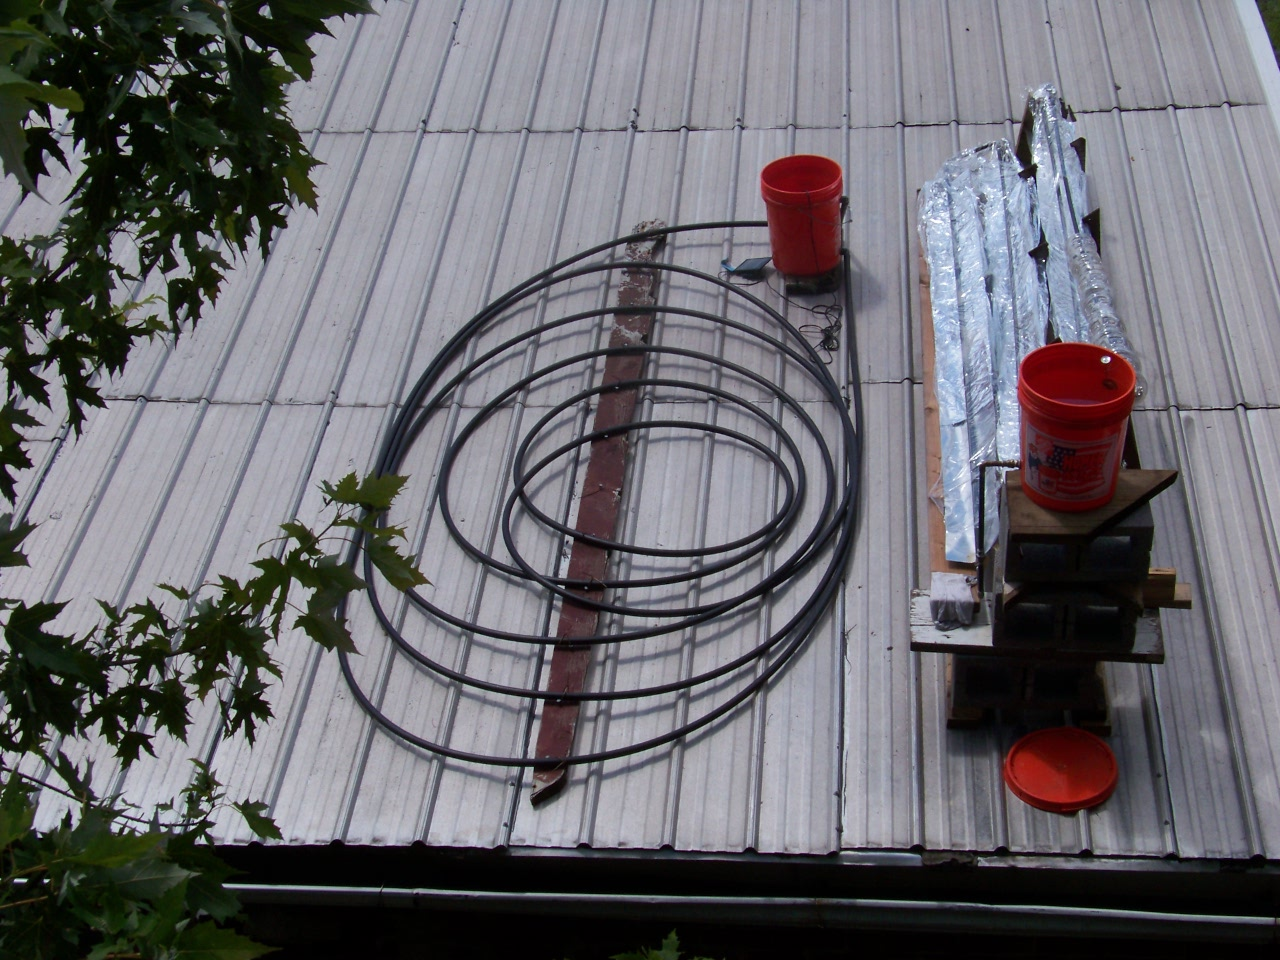 SOLAR EXPERIMENT ON ROOF